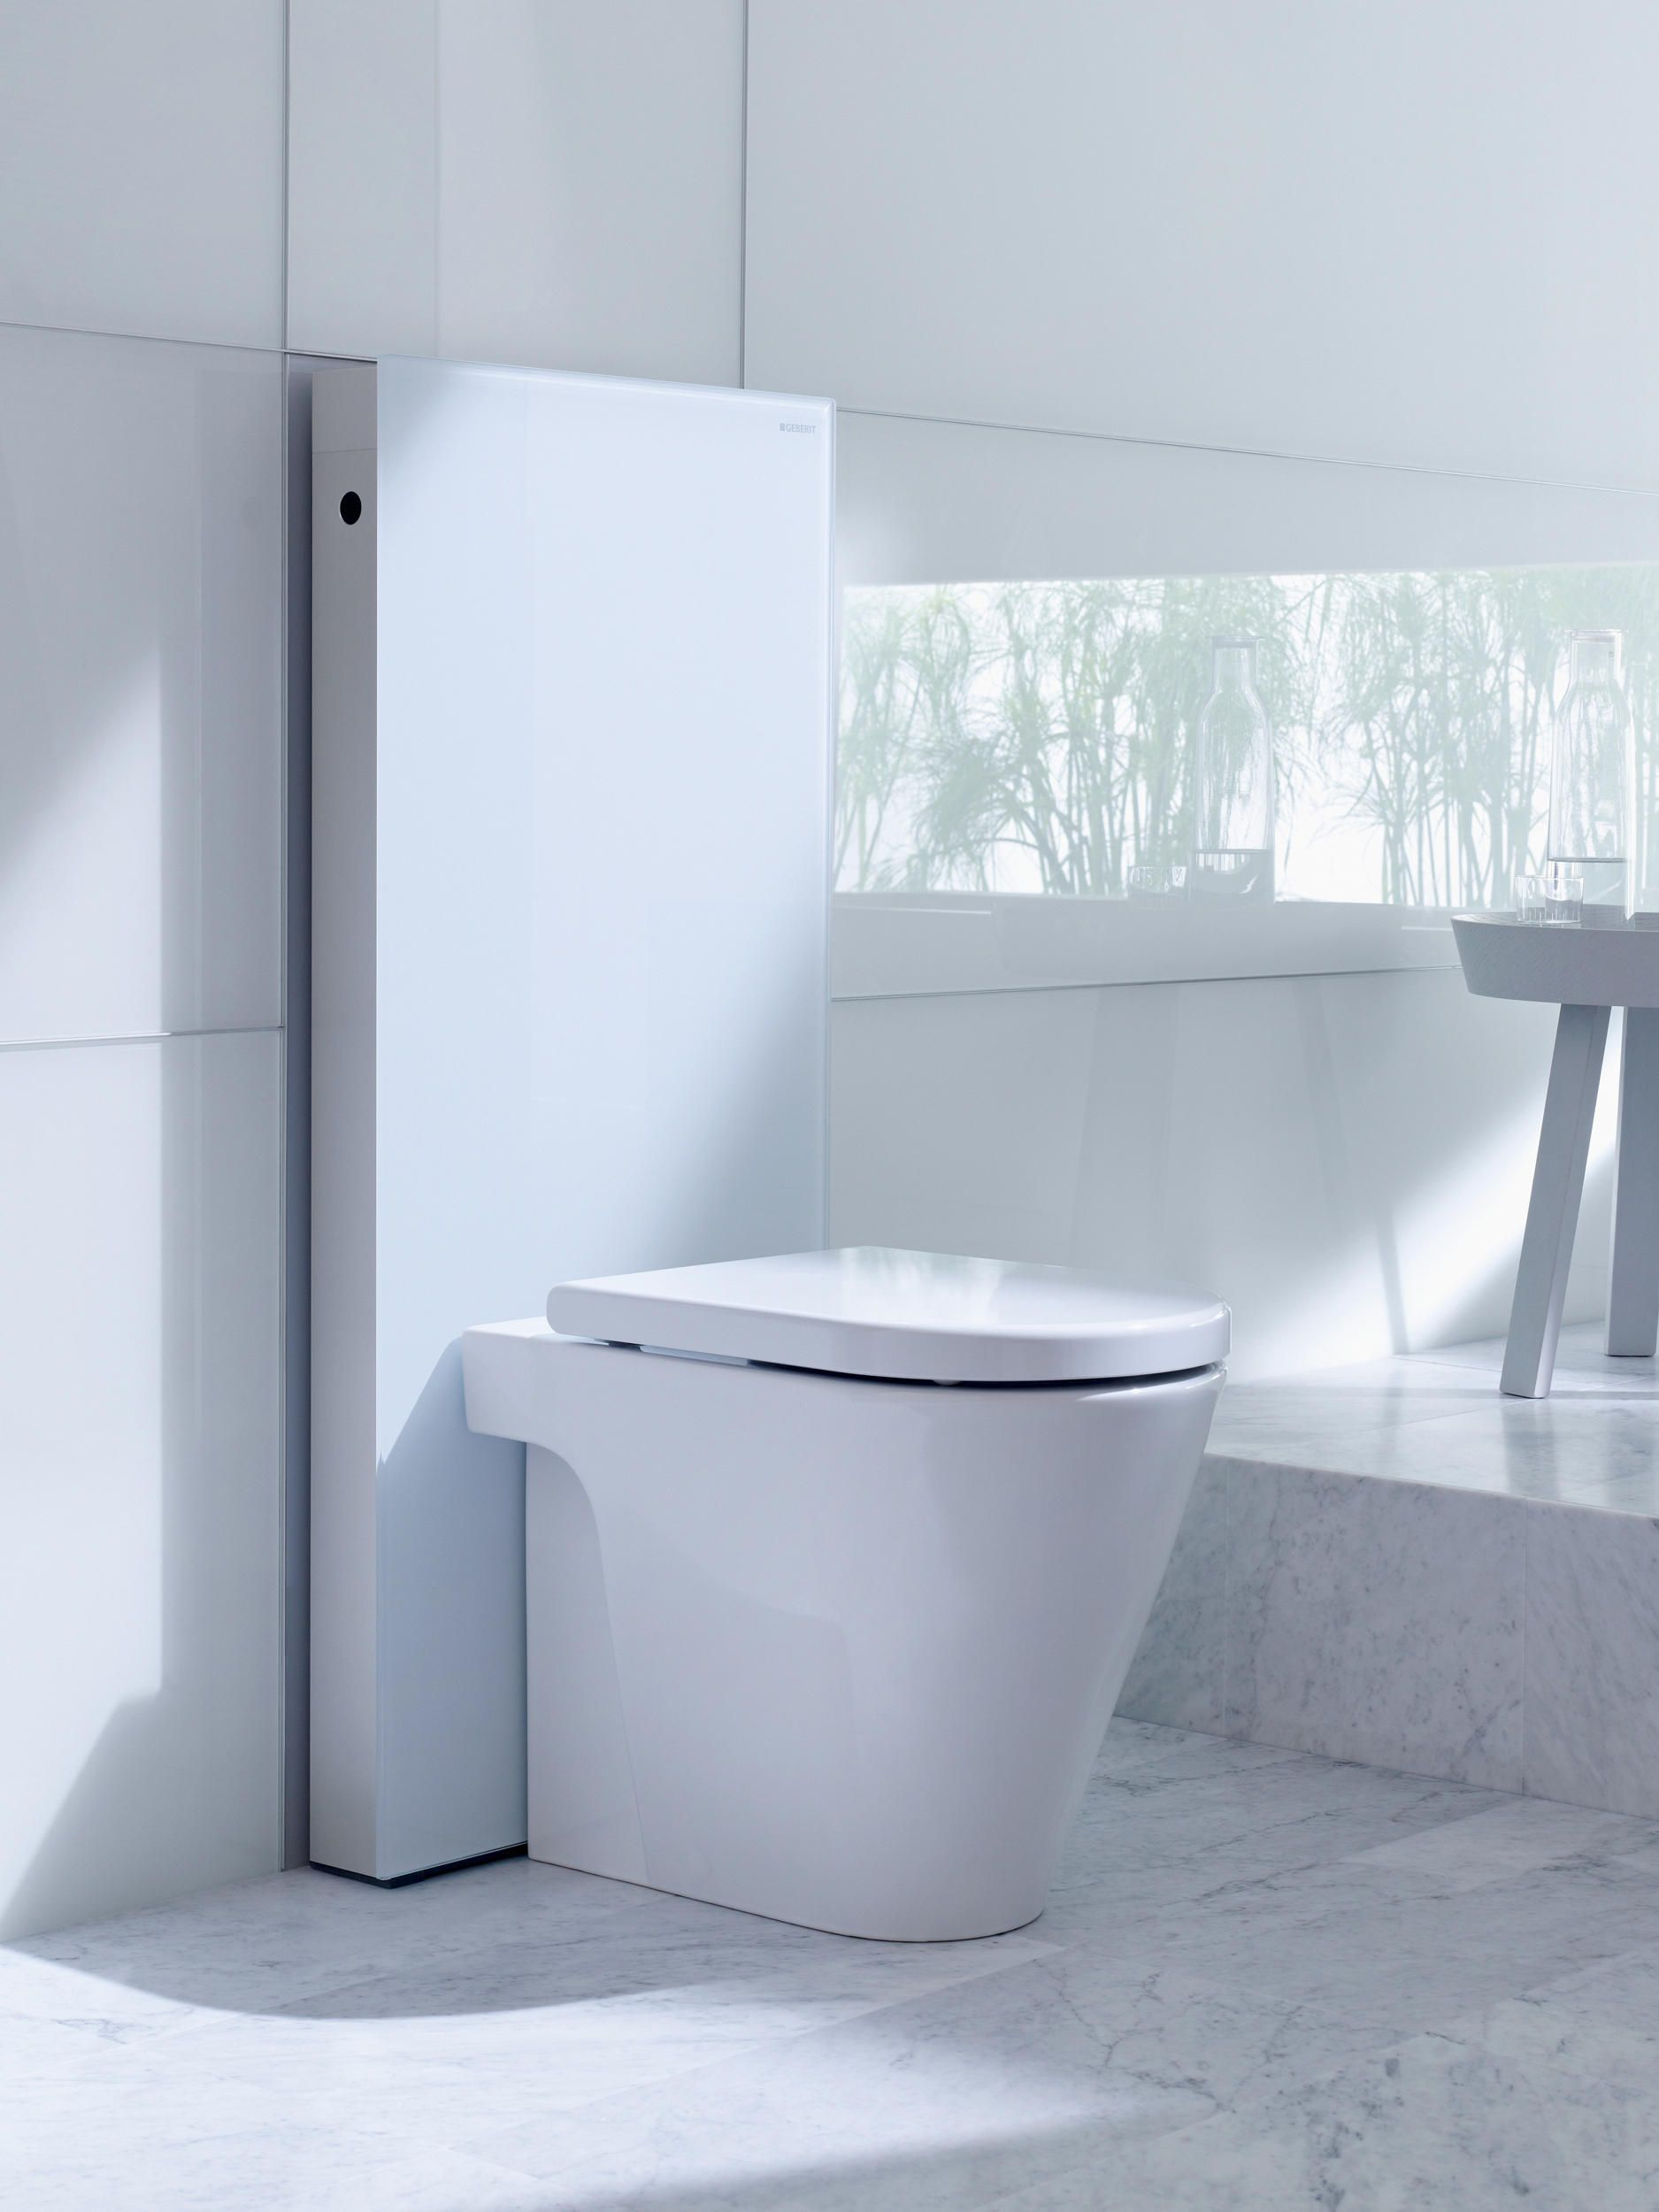 Geberit Monolith Plus Designer Toilets From Geberit All Information High Resolution Images Cads Catalogues Contact Bathroom Design Monolith Design